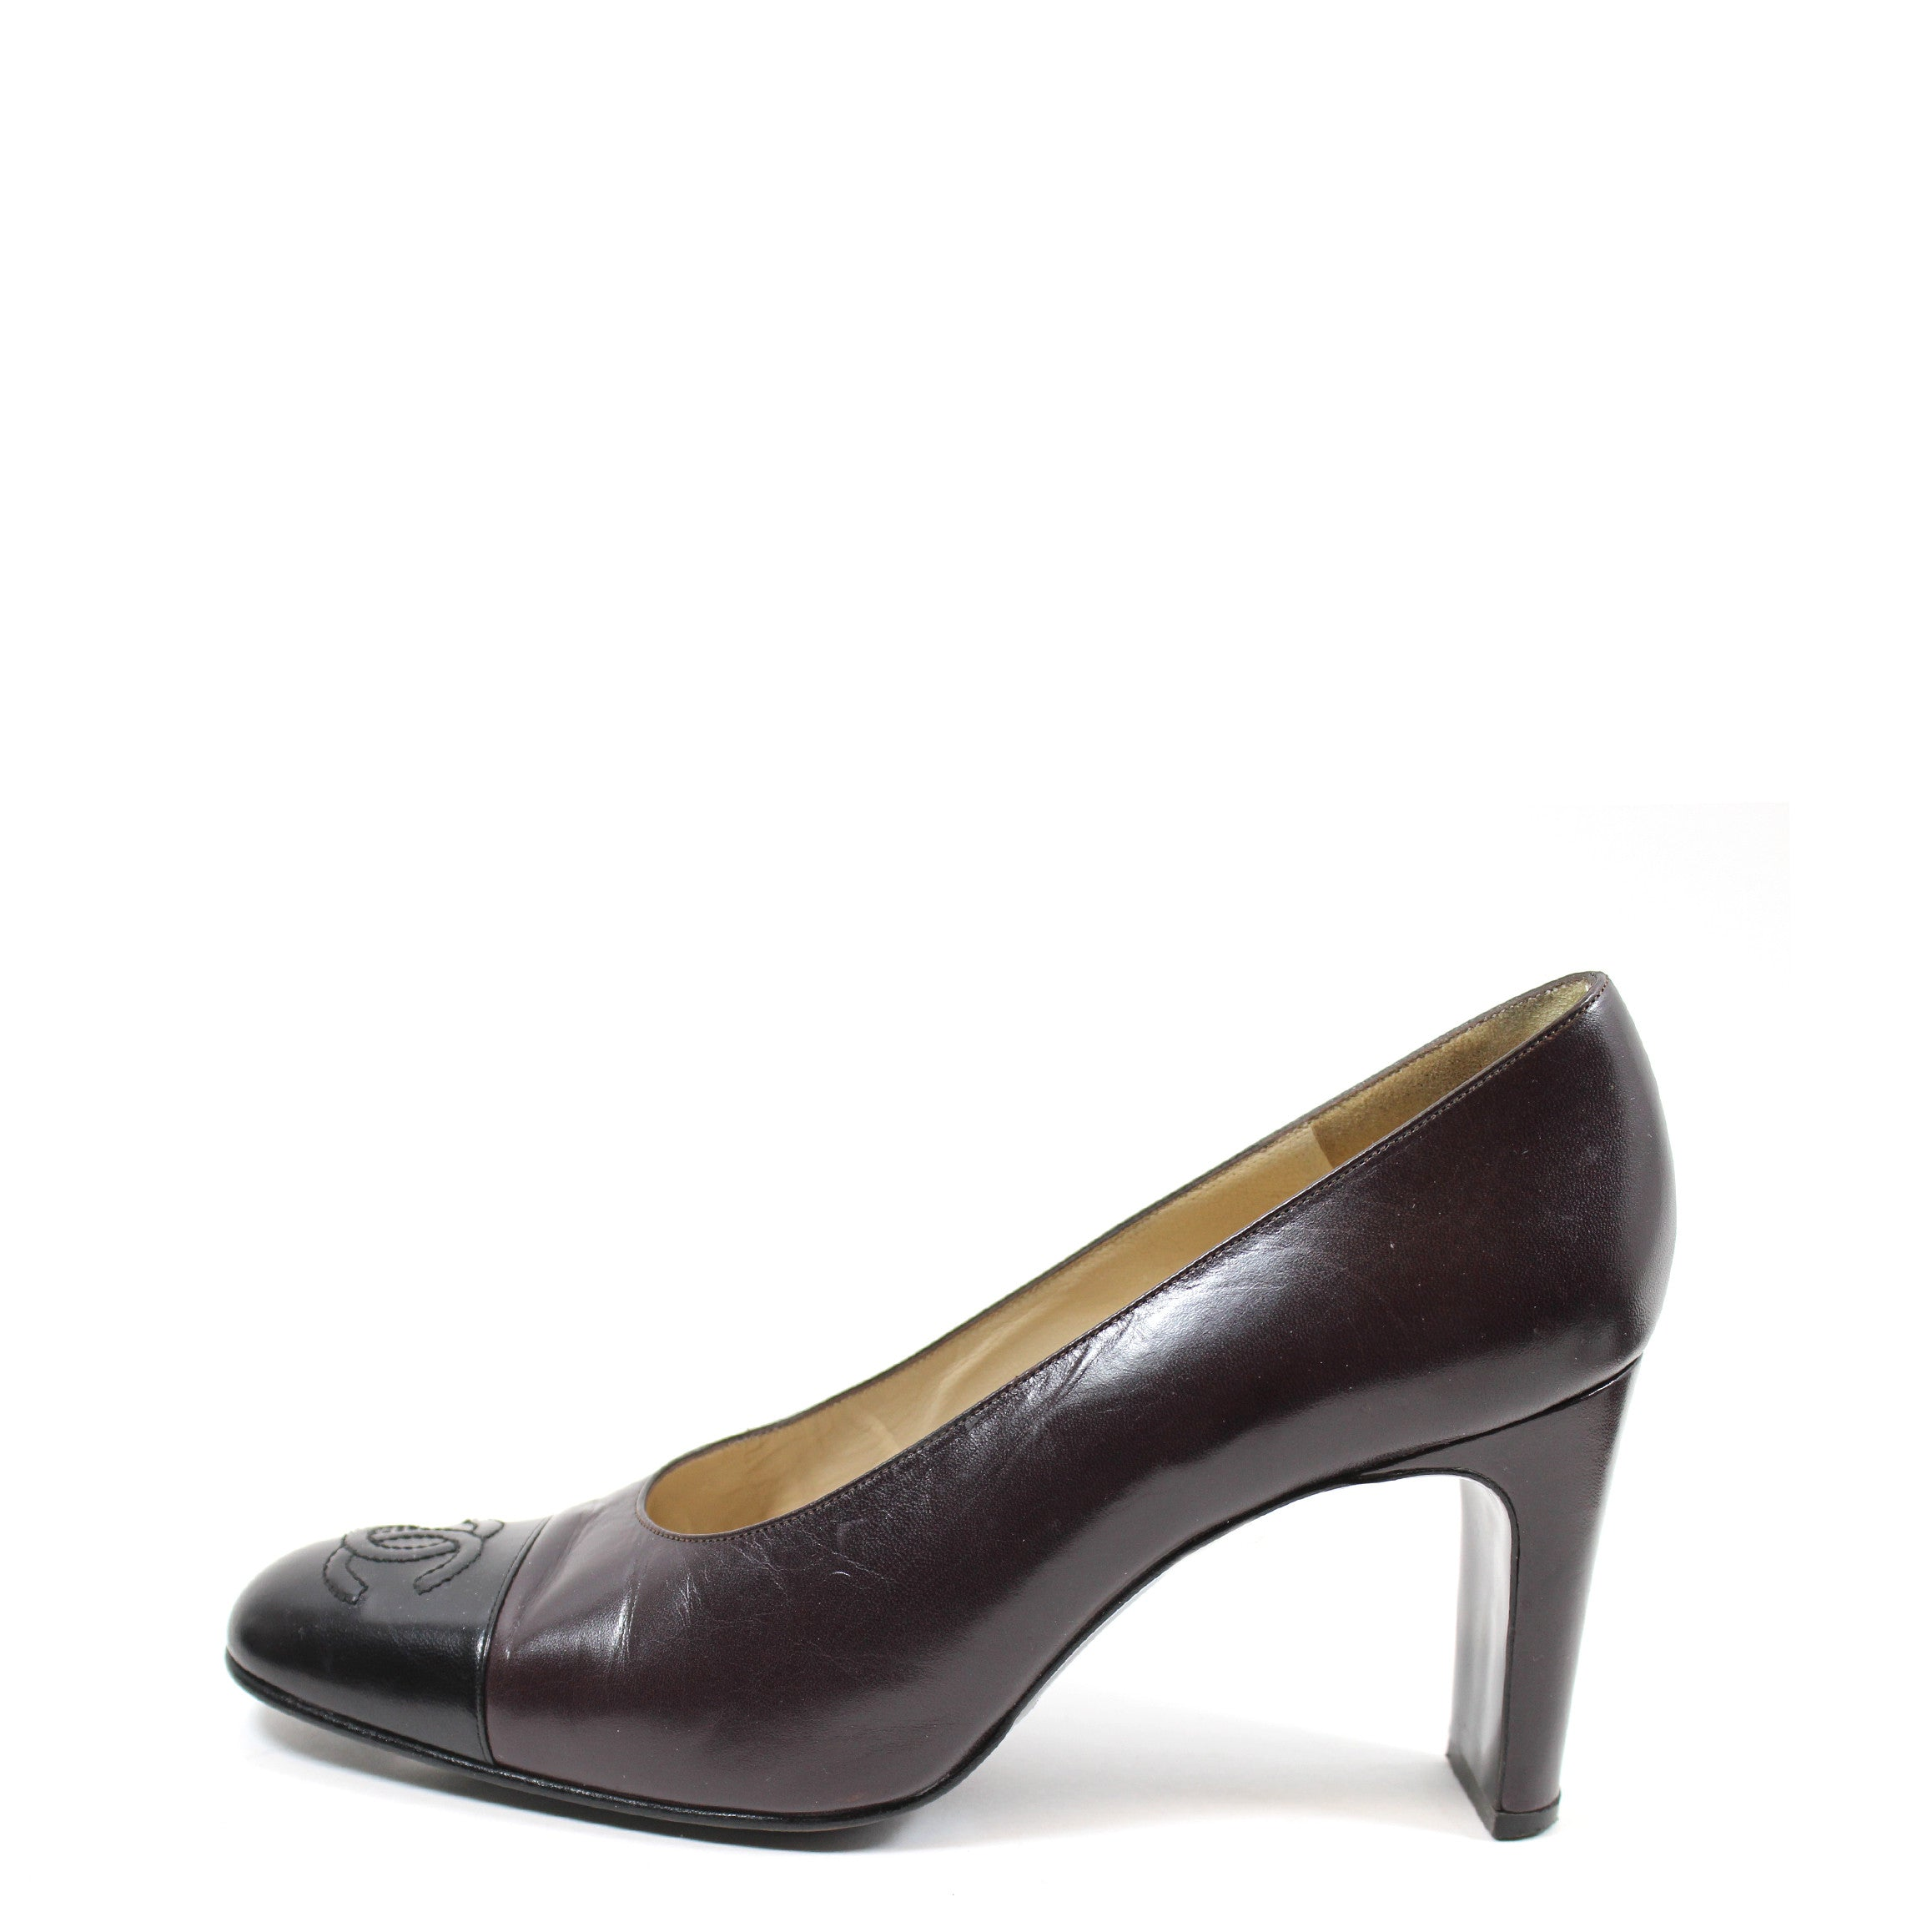 Chanel Brown and Black Leather Pumps (Size 37.5)